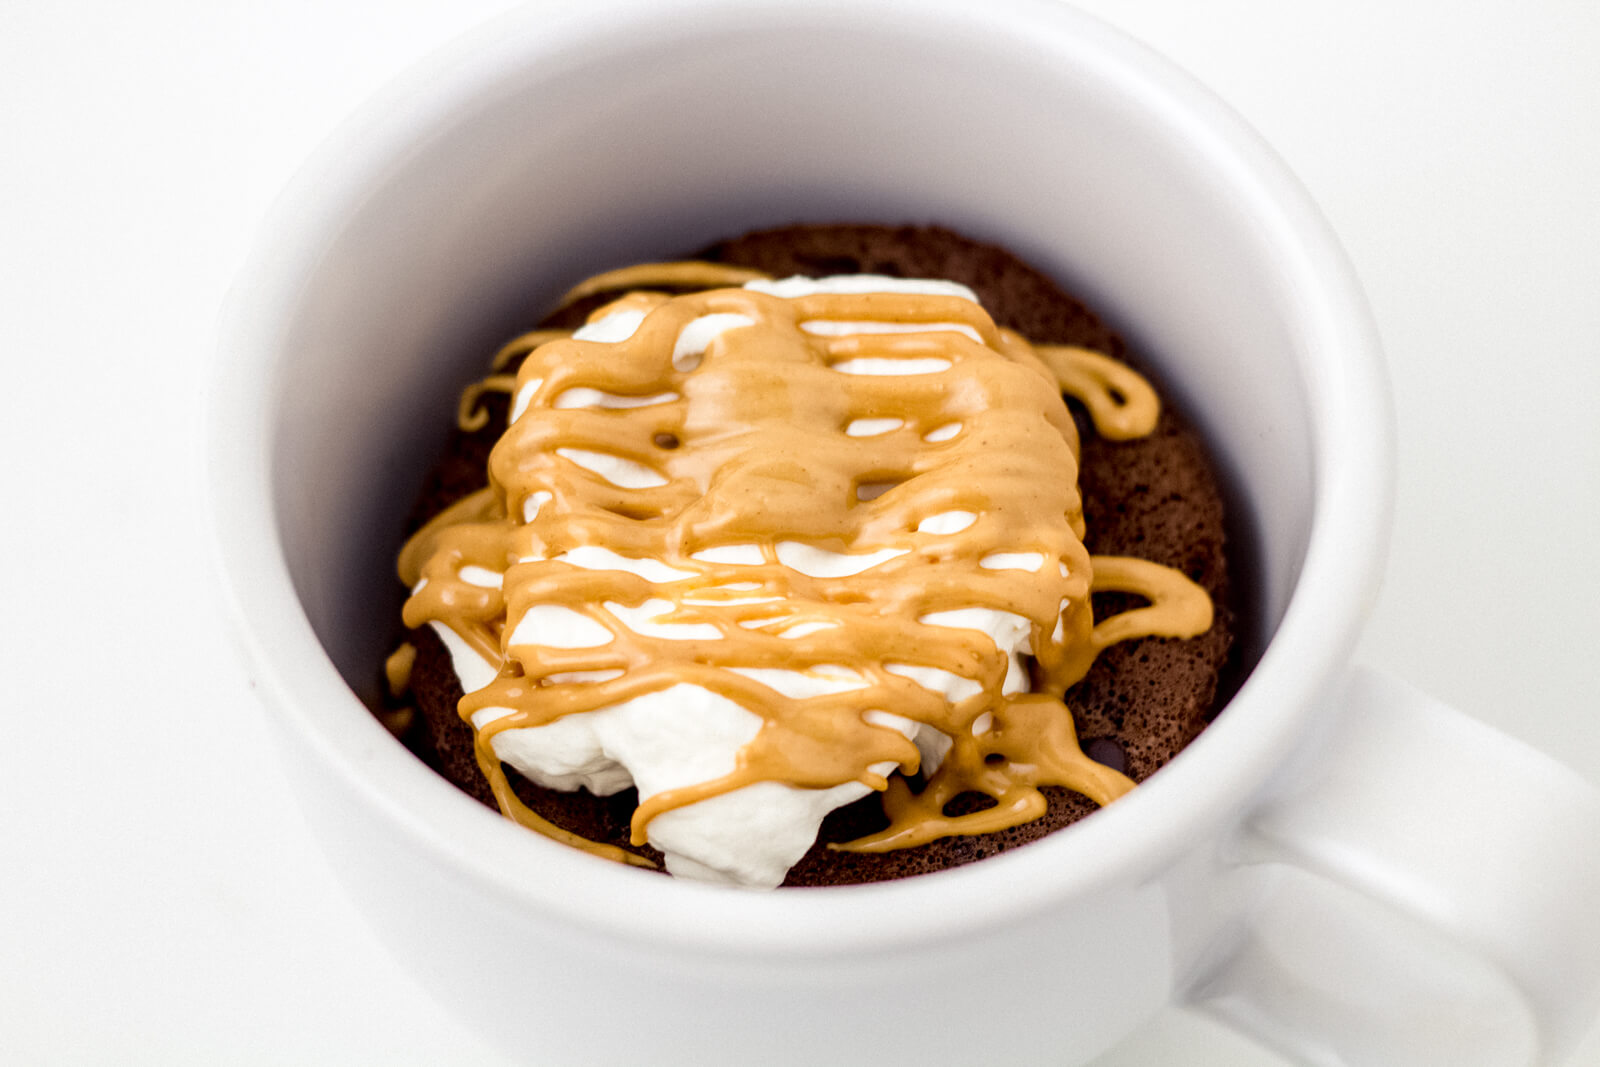 Quick And Delicious Keto Chocolate Mug Cake Recipe Made With Coconut Flour Bake It Keto